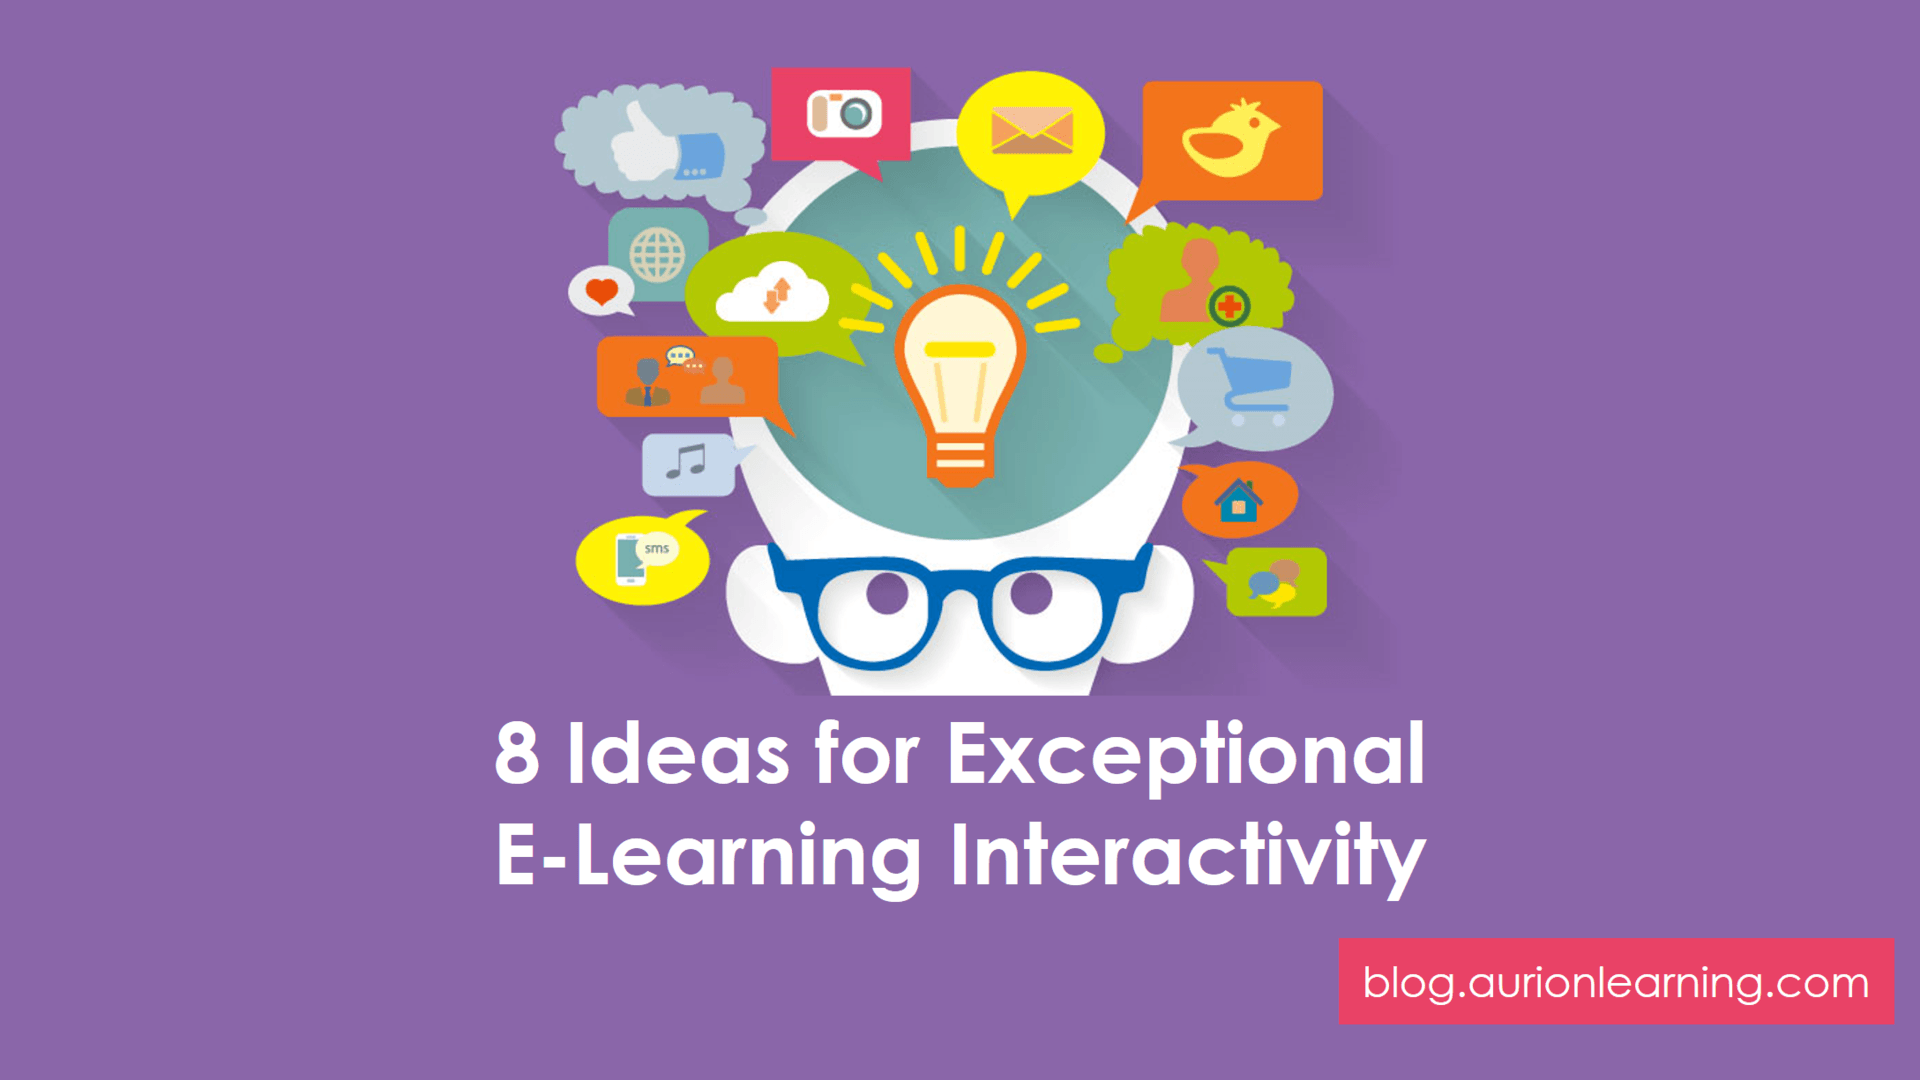 8 Ideas for Exceptional E-Learning Interactivity | Aurion Learning thumbnail